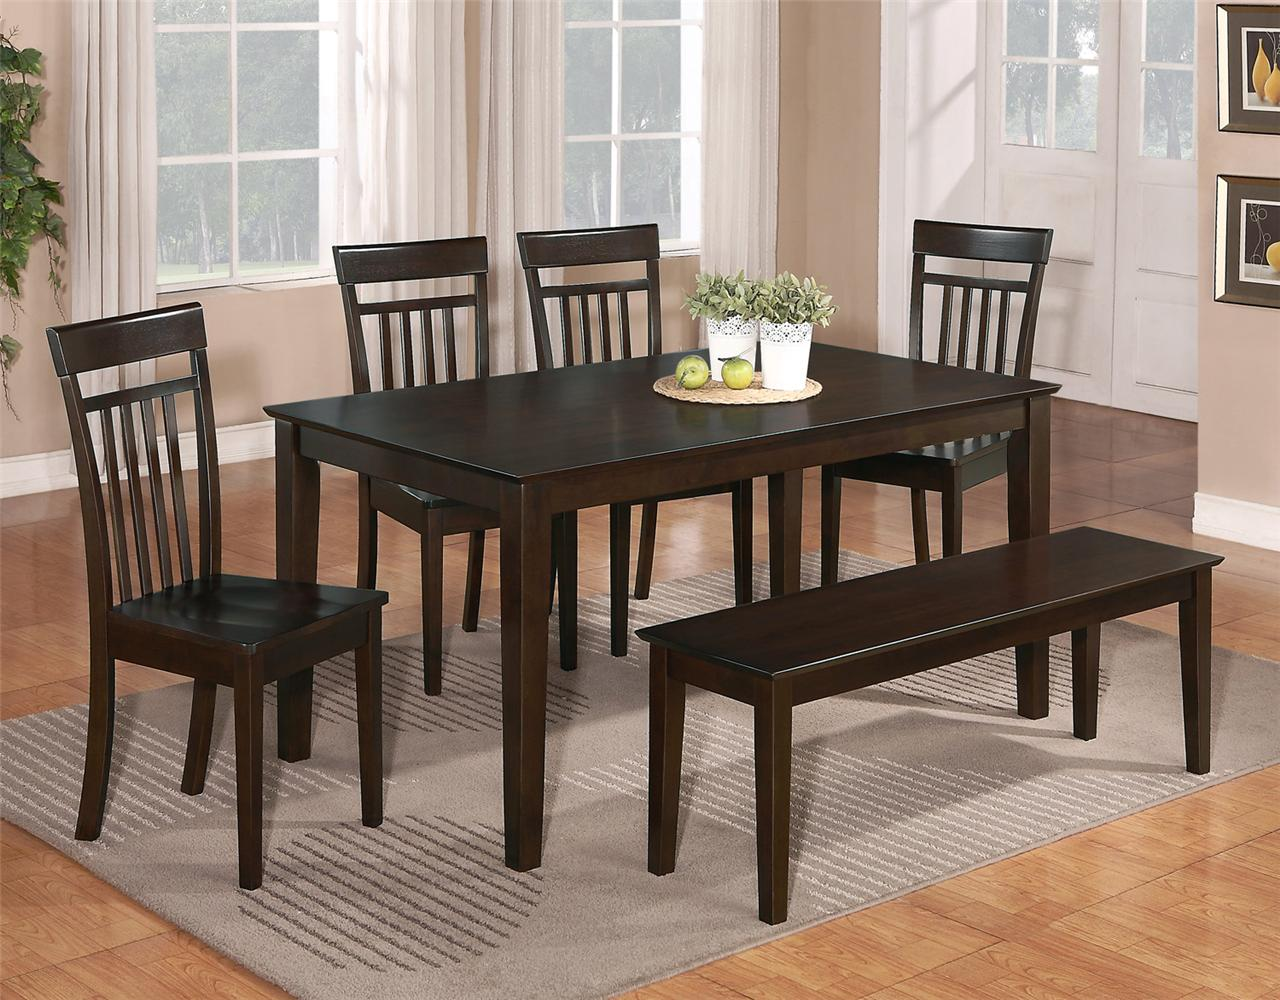 6 pc dinette kitchen dining room set table w 4 wood chair for Dinette sets with bench seating